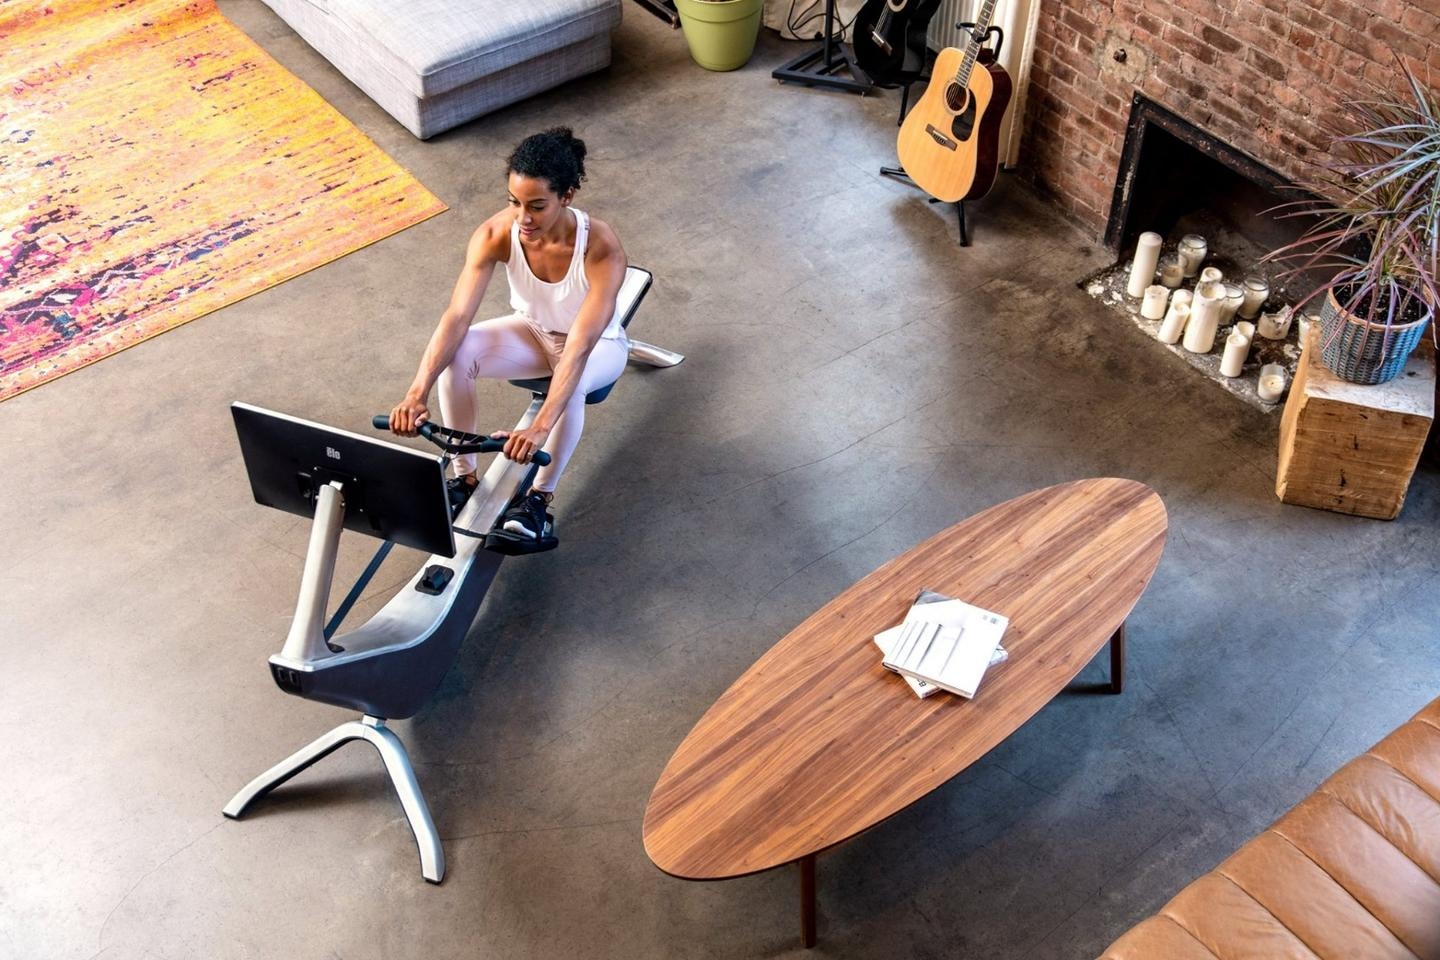 Rowing machine aims to bring a live-streamed coach into your